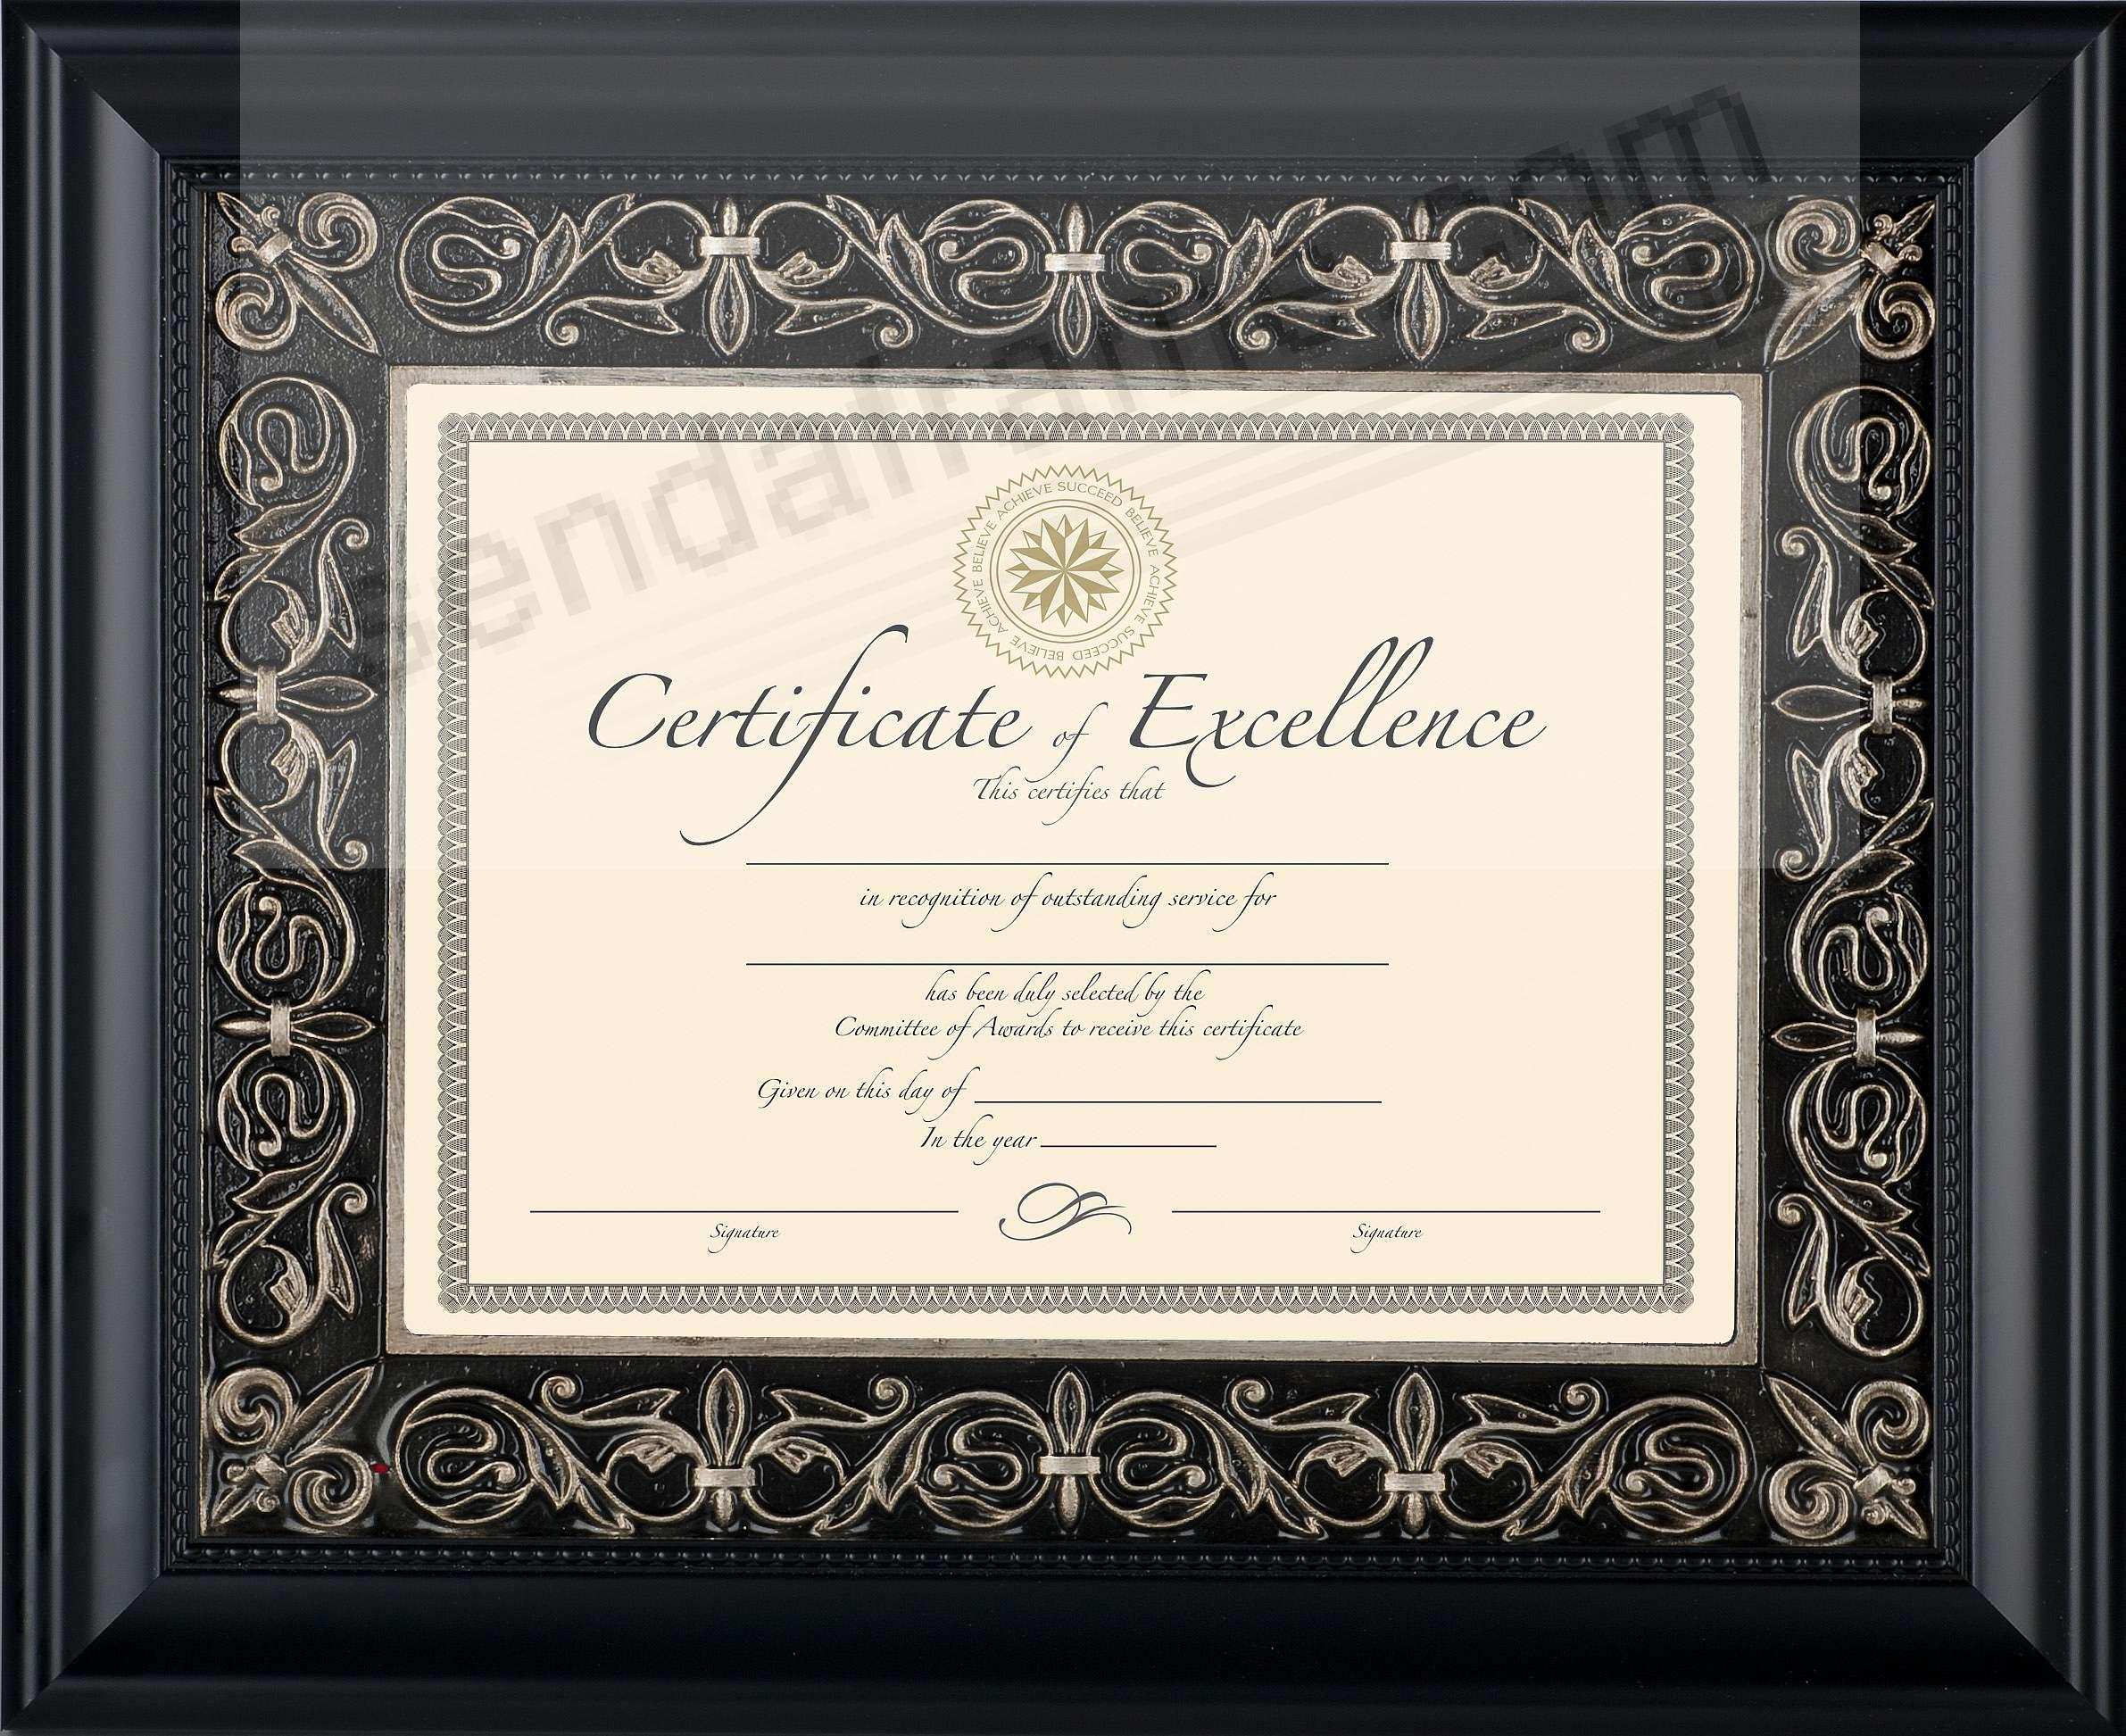 florence black matted 11x814x11 document frame by daxintercraft